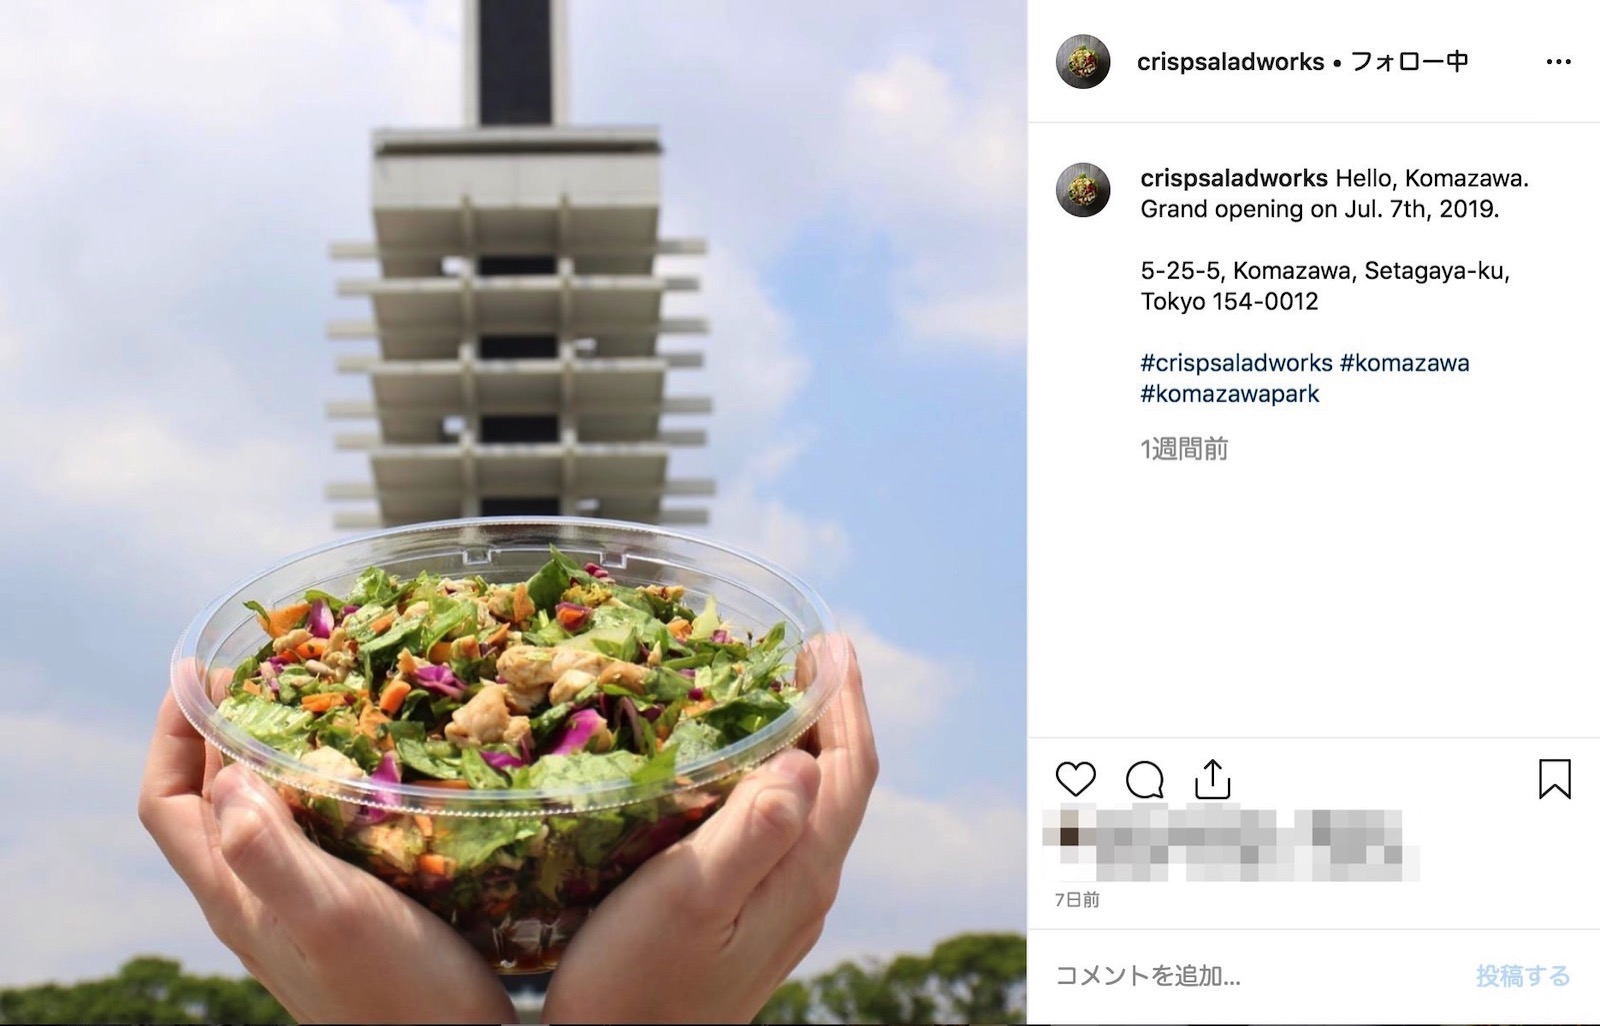 Crisp salad works in komazawa